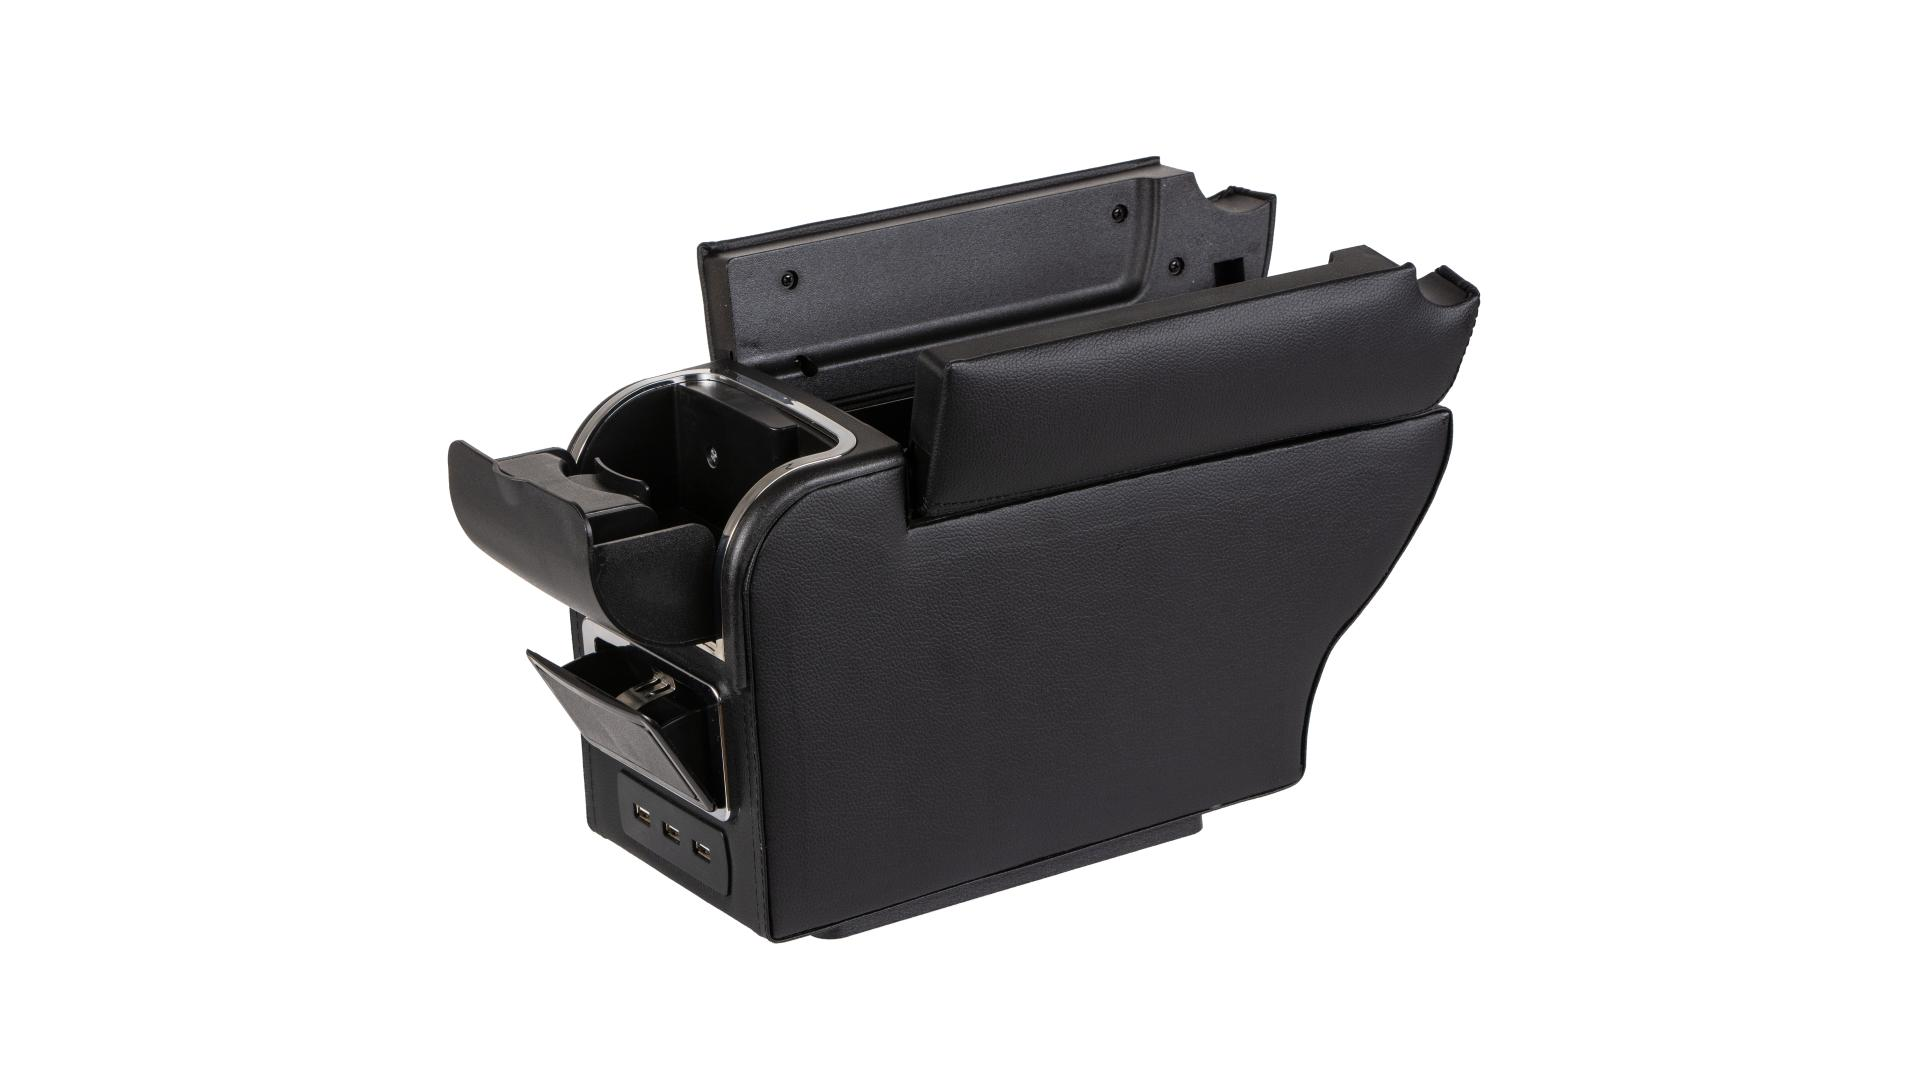 4CARS Console box with USB ports